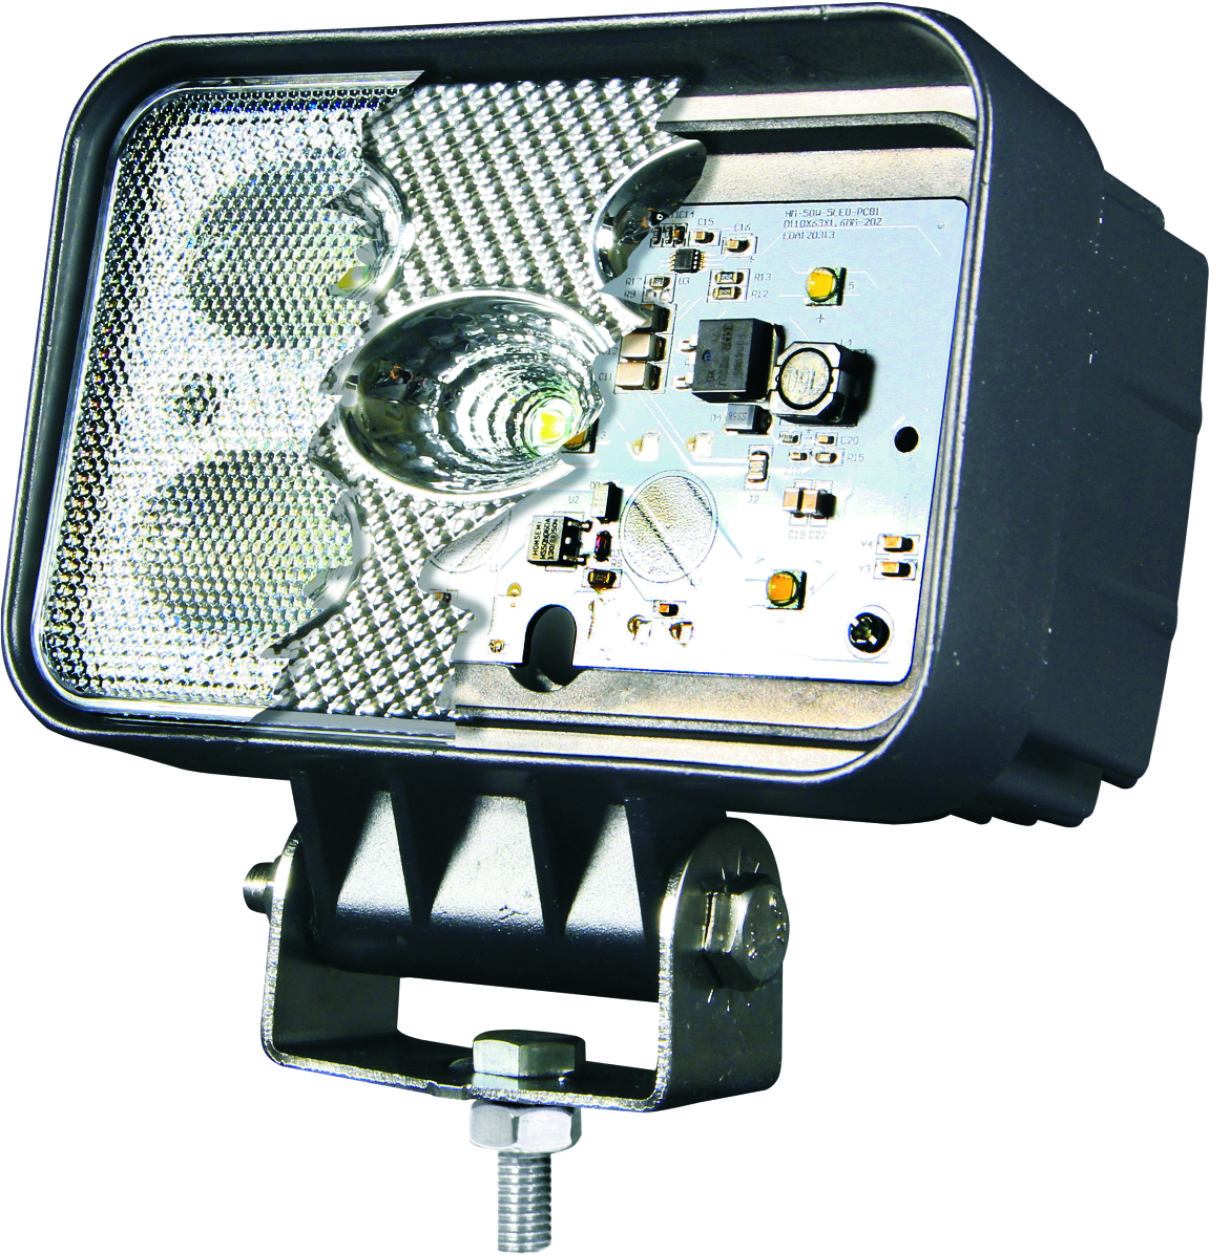 Masai LED and HID vehicle lights